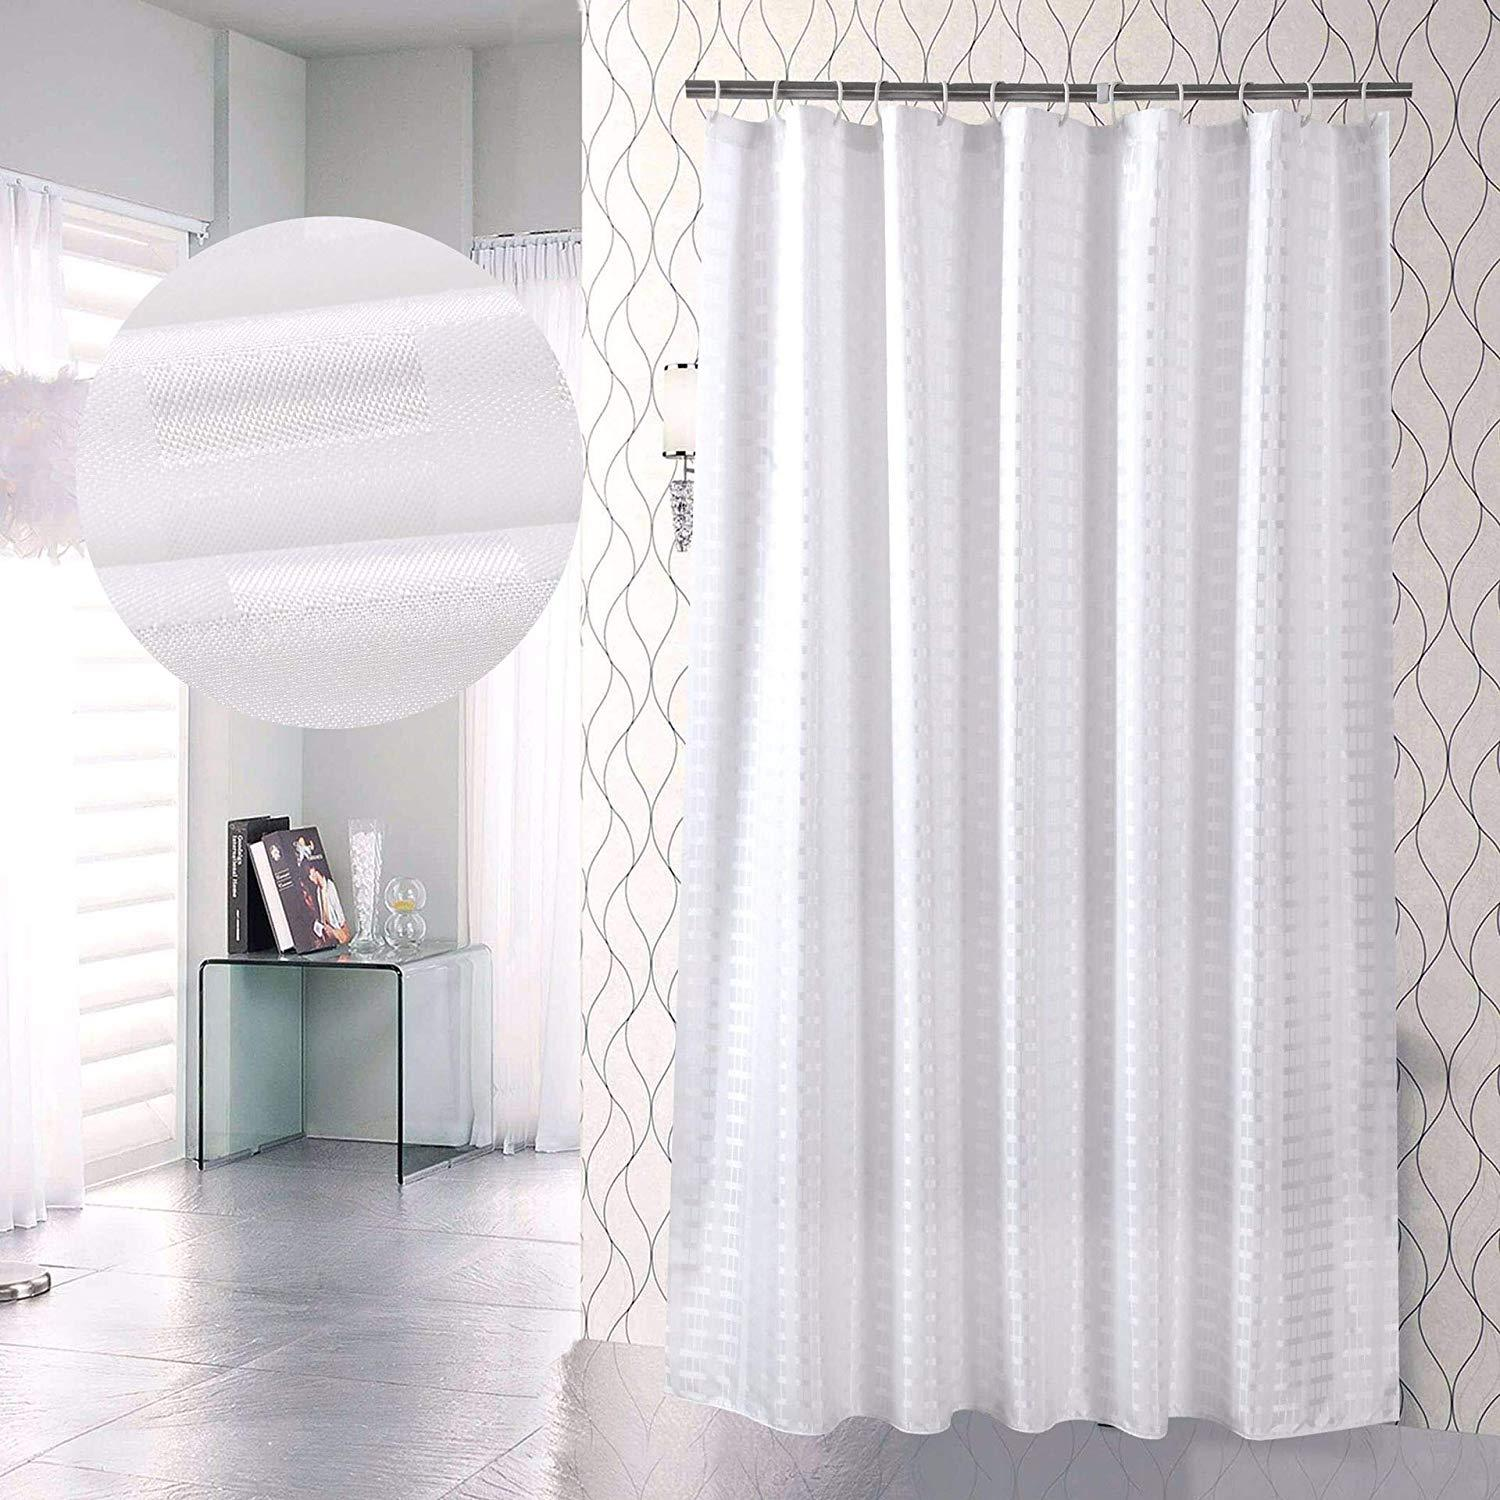 2019 Jarl Home Bathroom Sets With Shower Curtain And Hooks 72 72 Solid White Fabrics Shower Curtain Liner Opaque Waterproof Polyester Curtains From